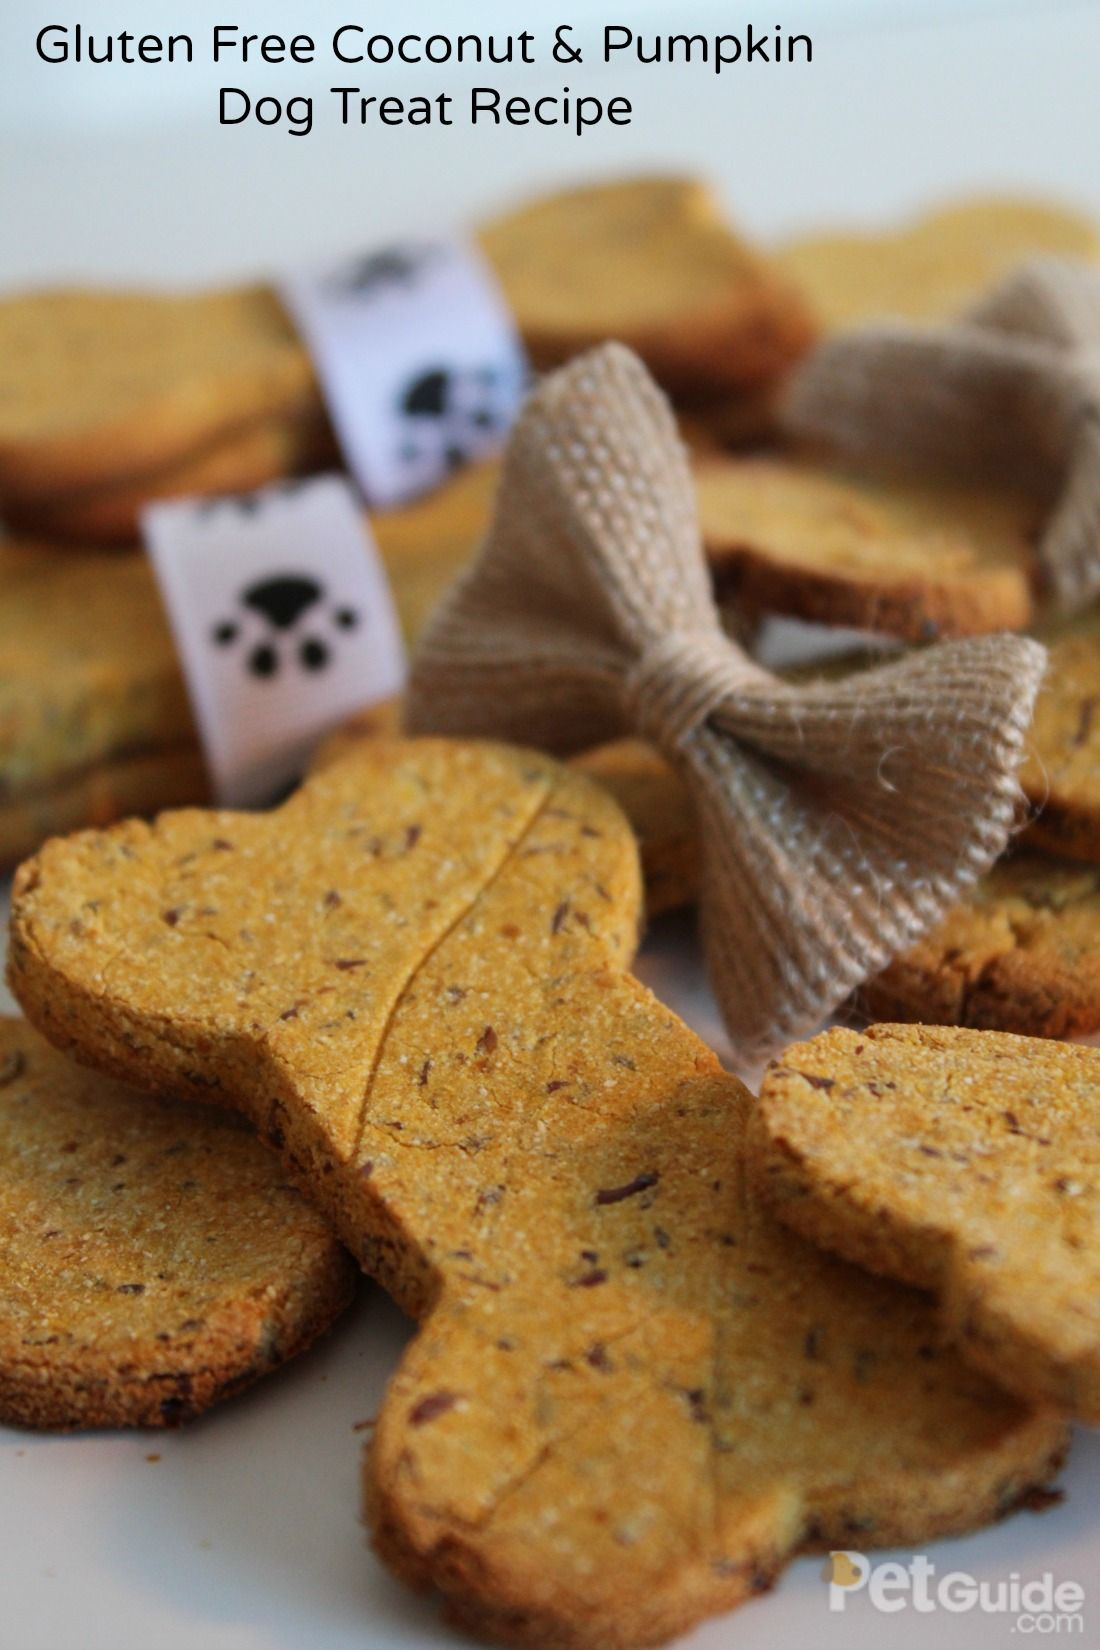 Gluten Free Pumpkin Coconut Dog Treat Recipe Dog Treat Recipes